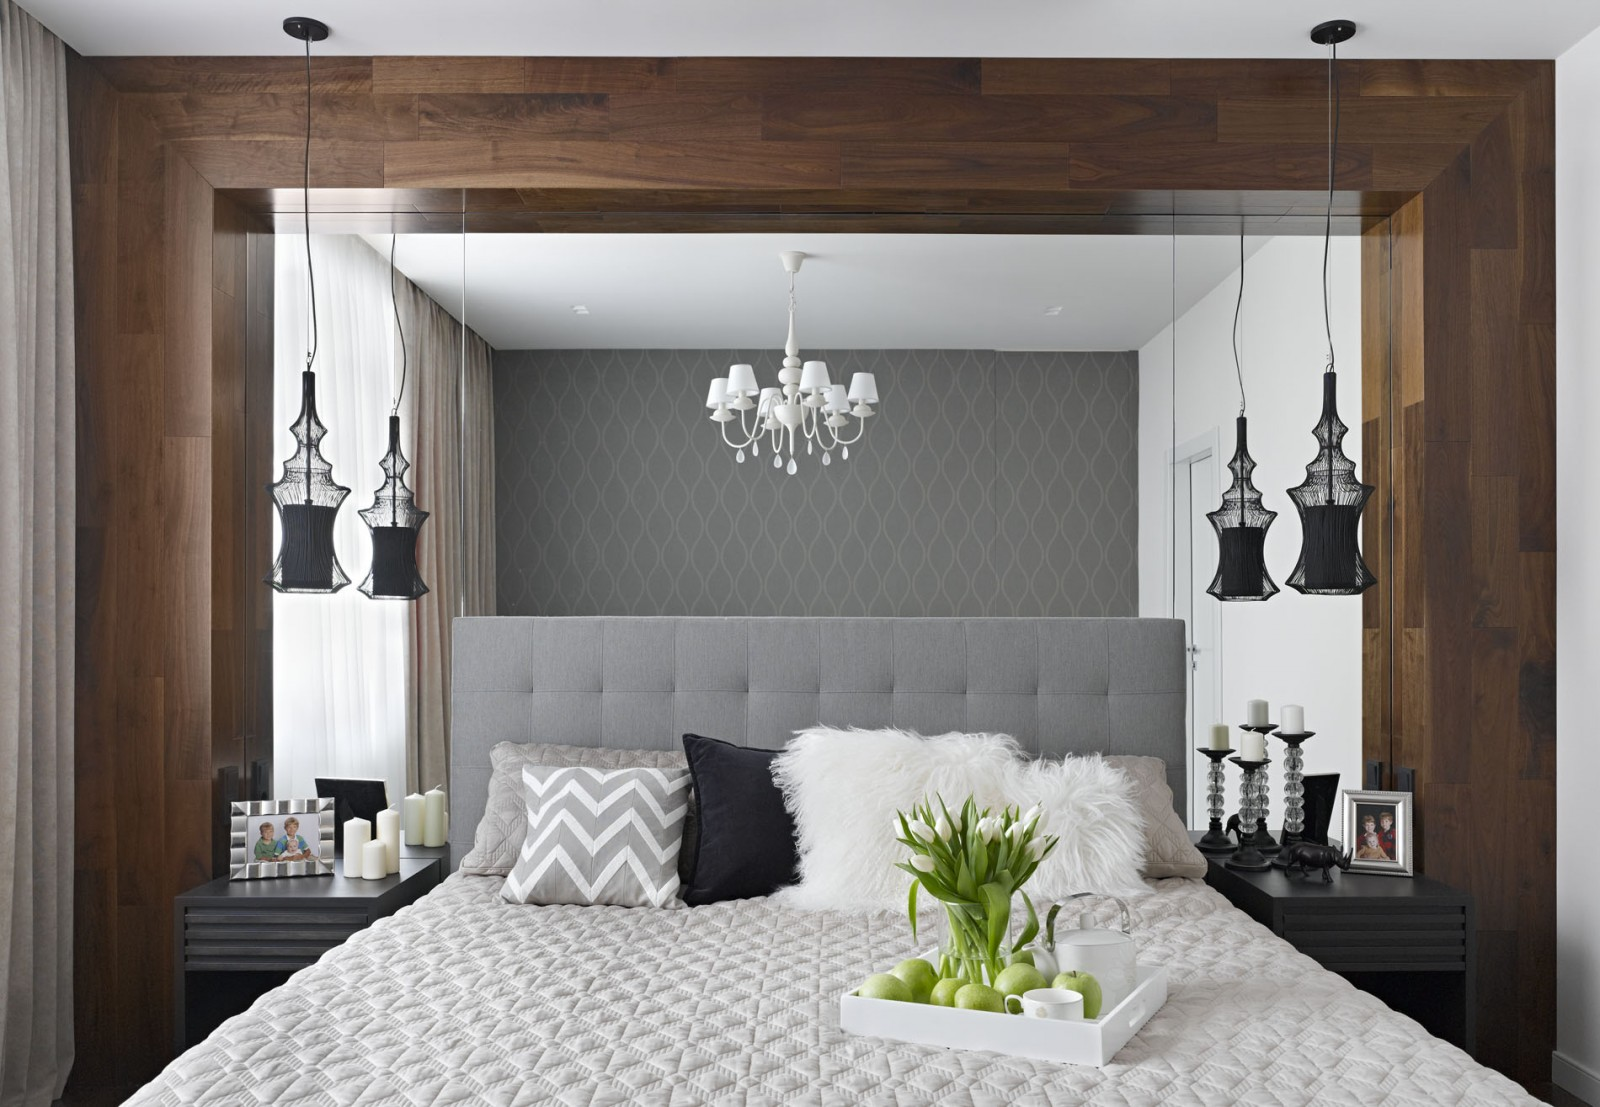 20 Small Modern Bedroom Ideas Architecture Beast Amazing Alexandra Fedorova